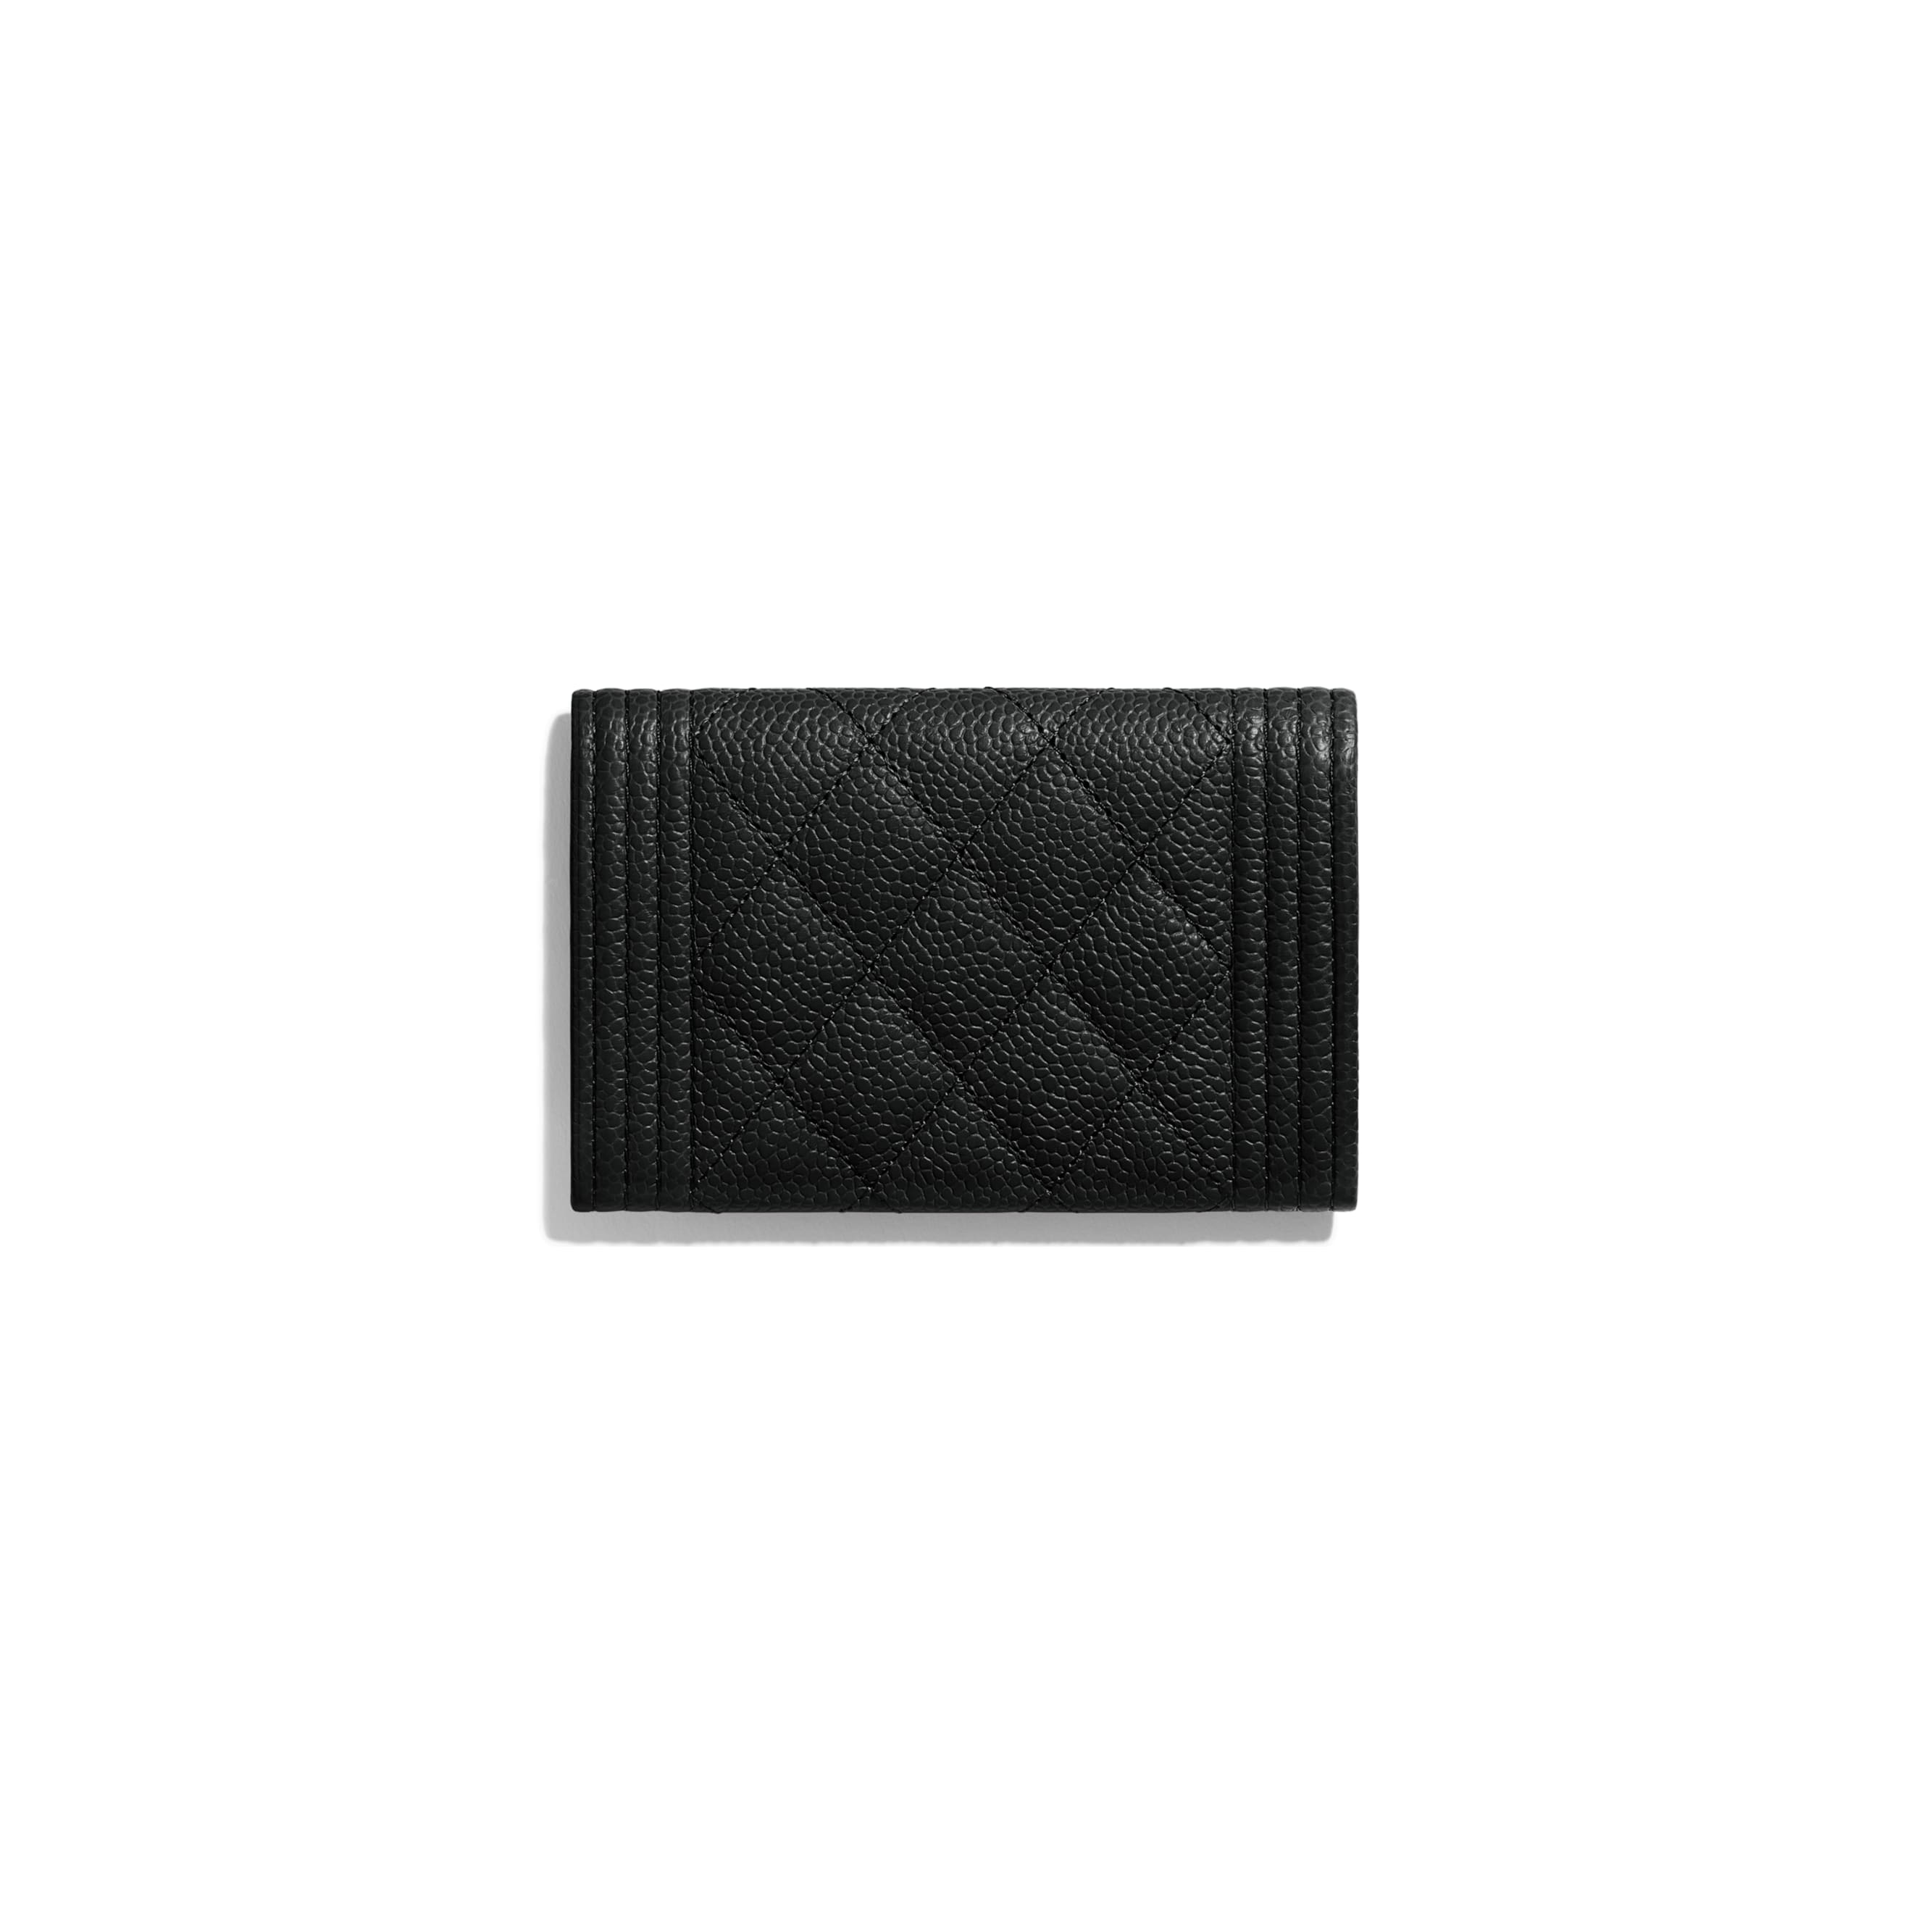 BOY CHANEL Flap Card Holder - Black - Grained Calfskin & Gold-Tone Metal - Alternative view - see standard sized version